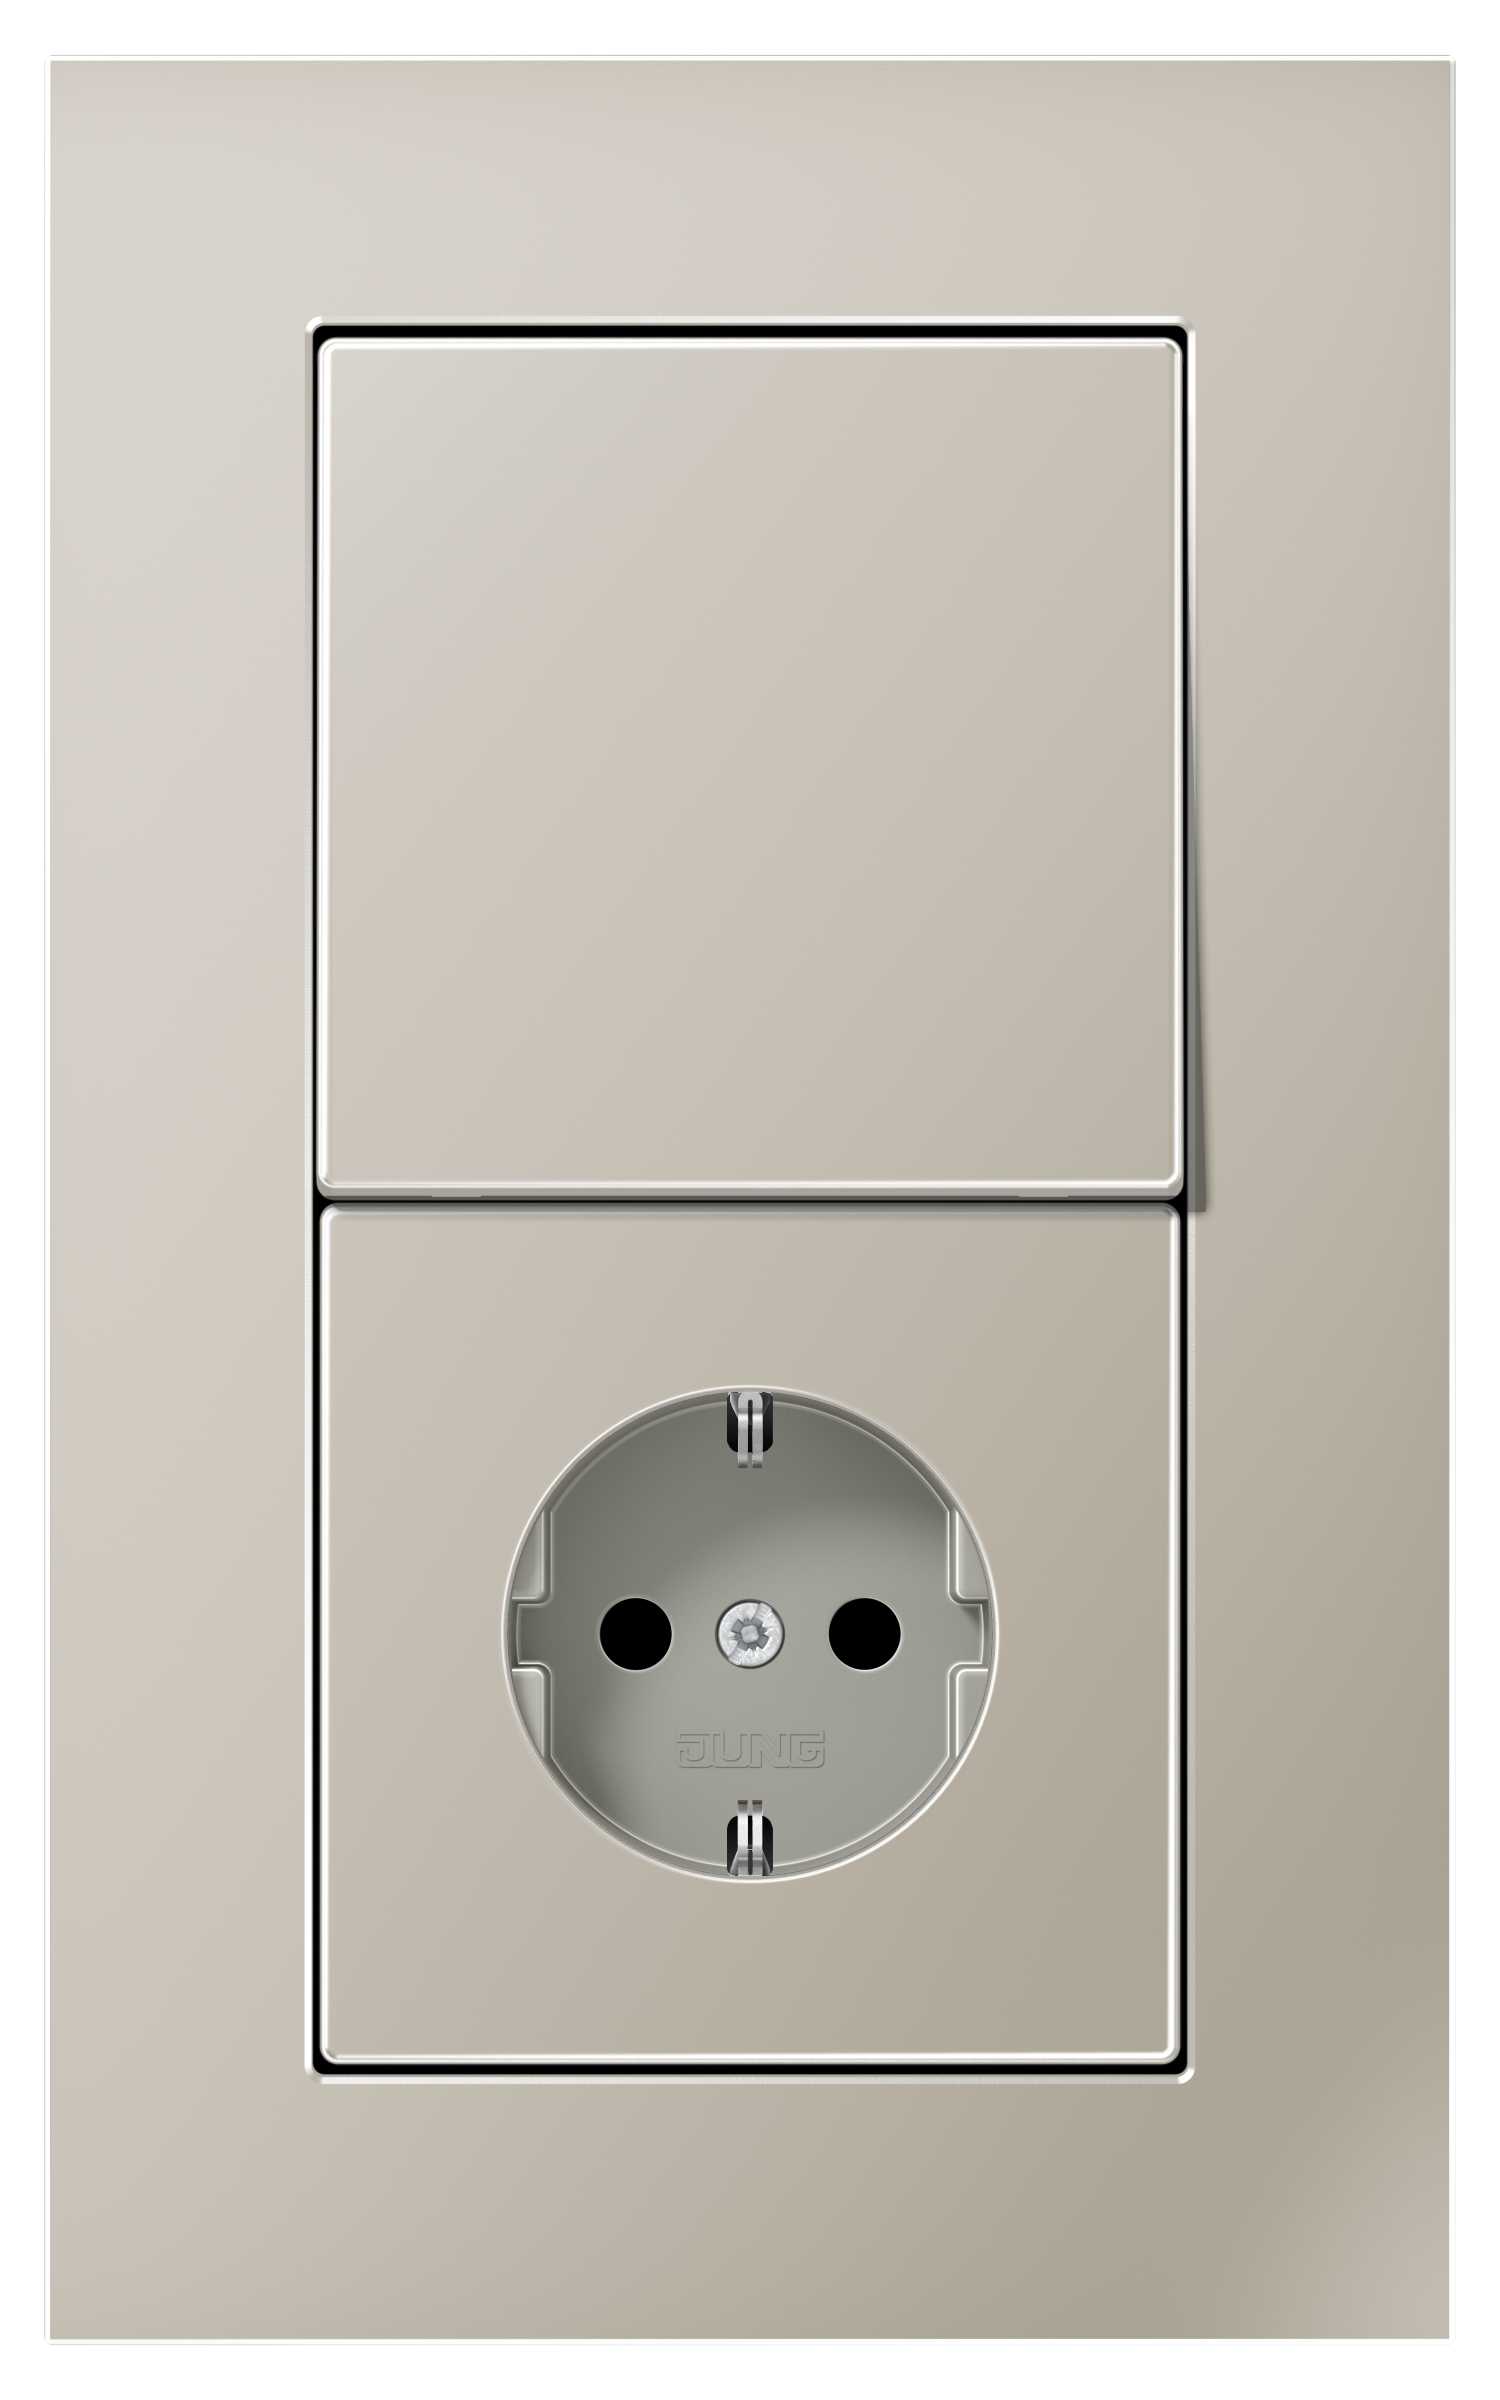 JUNG_LS_plus_stainless-steel_switch-socket